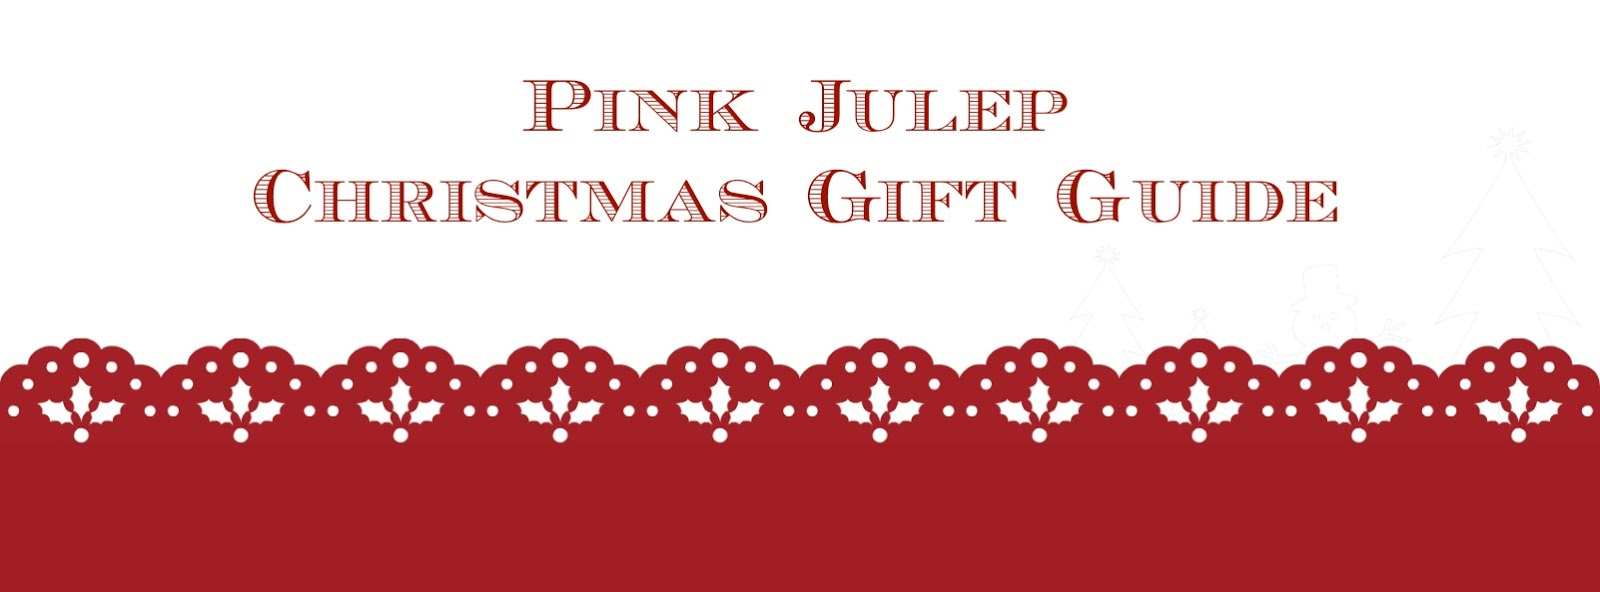 Pink Julep Christmas Gift Guide Graphic